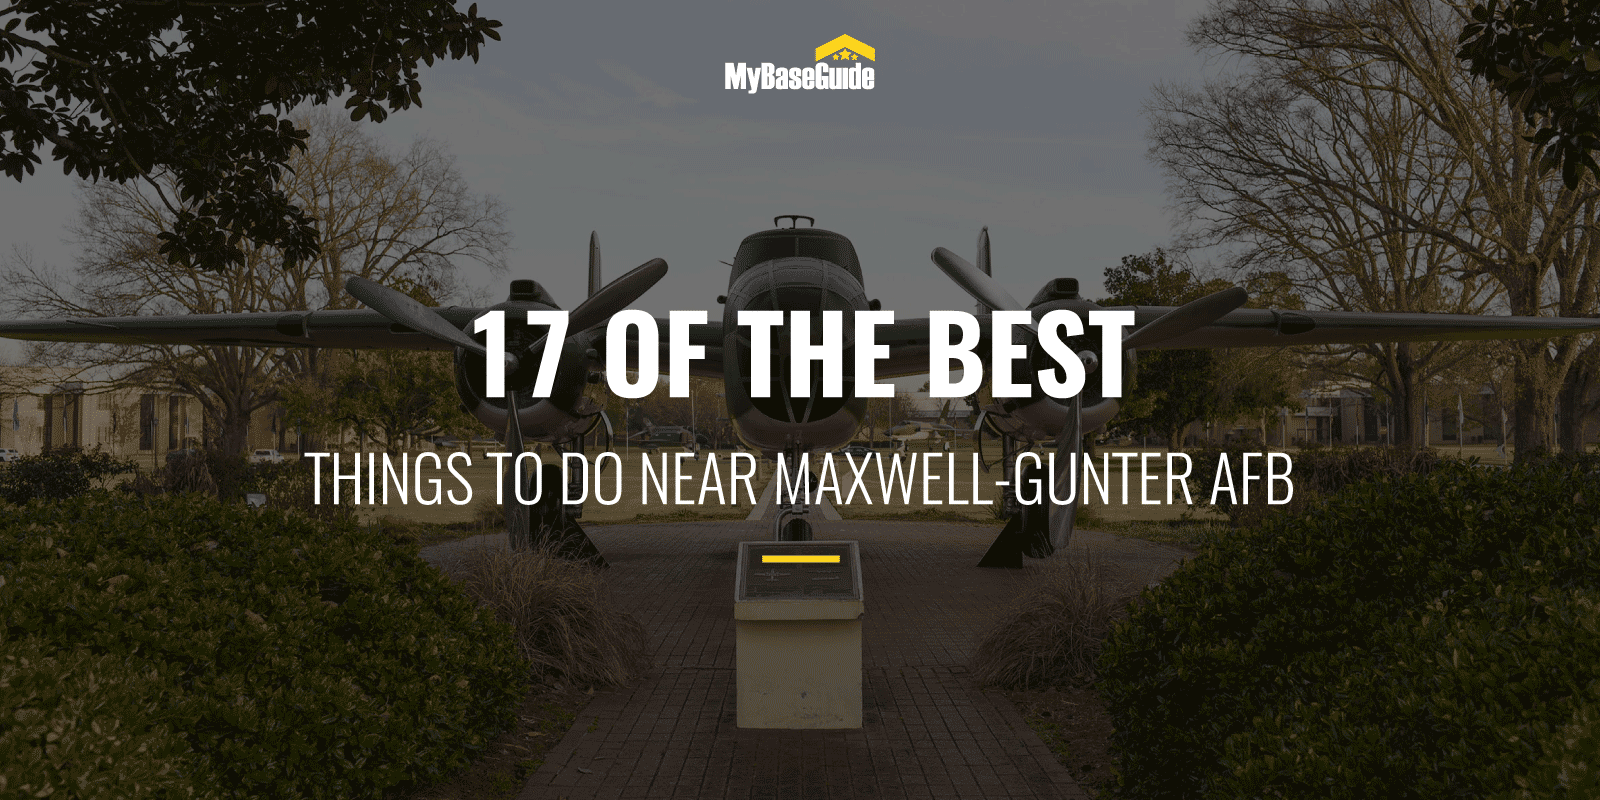 17 Of the Best Things to Do Near Maxwell-Gunter AFB